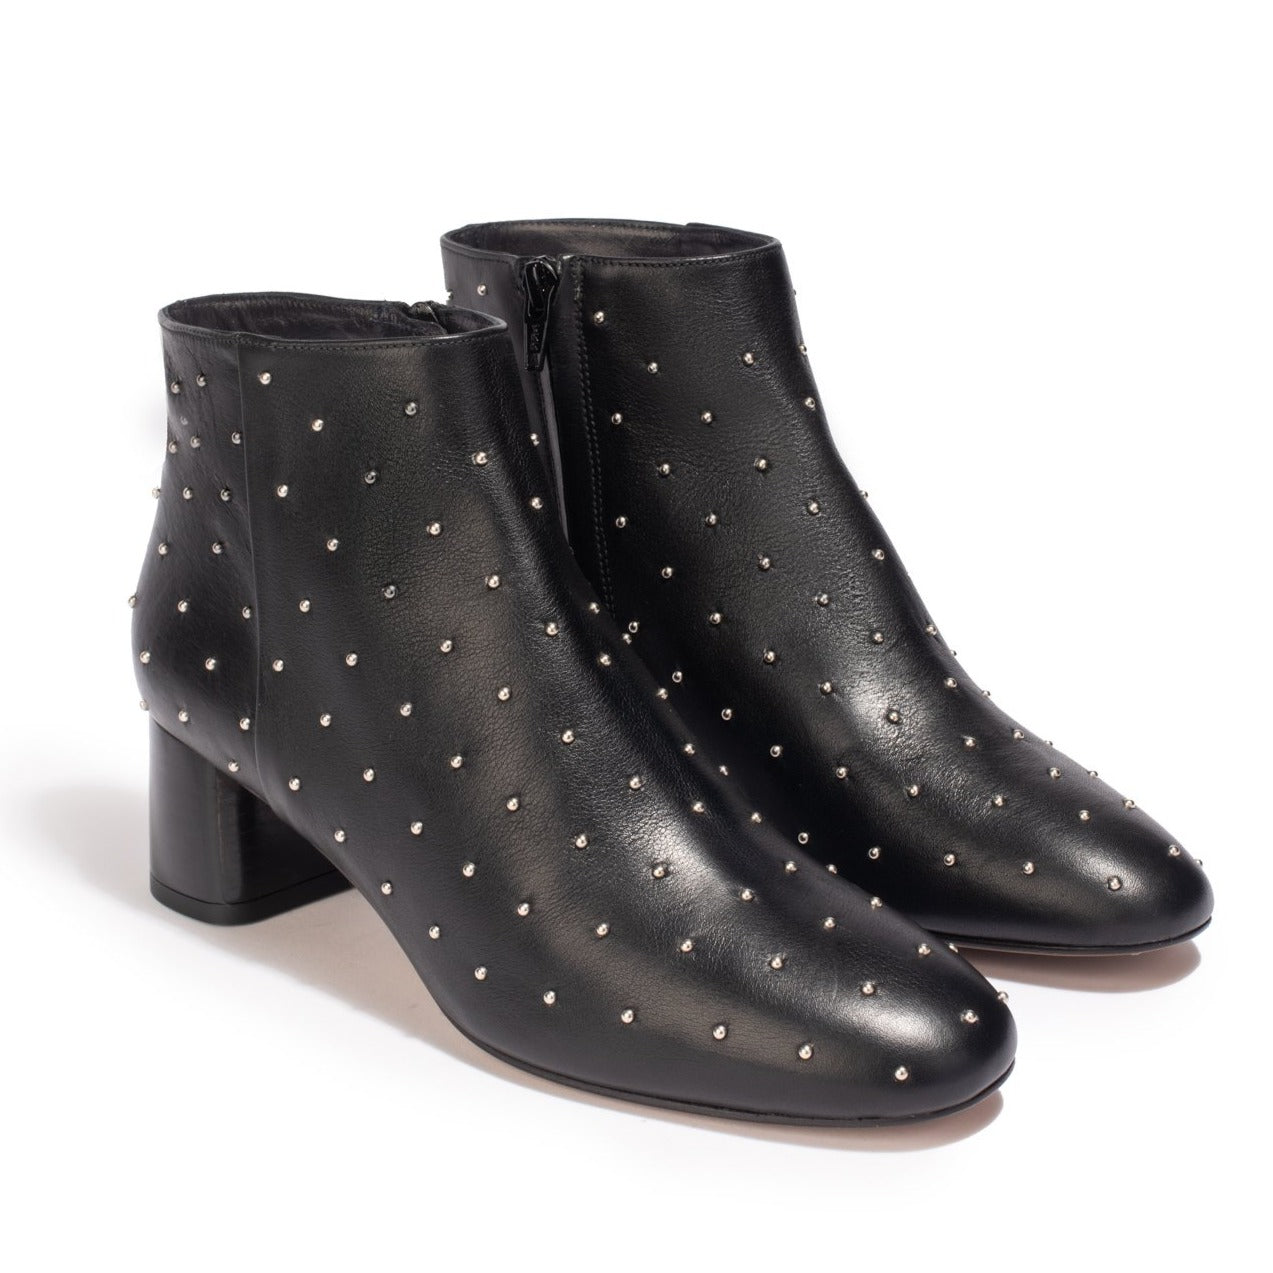 Bottines Daphne Noir - Anaki Paris